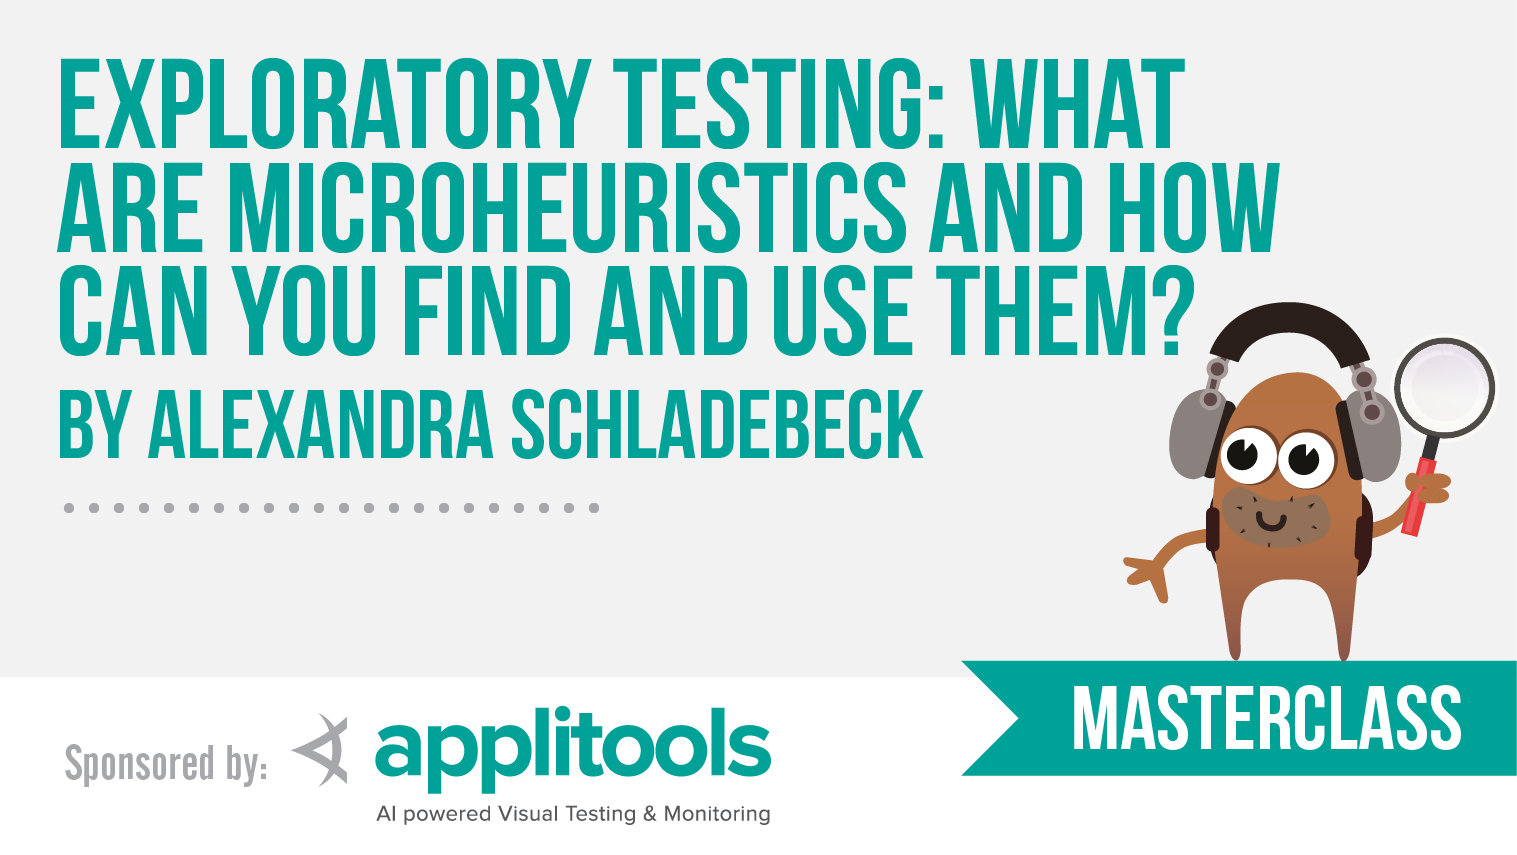 Masterclass: Exploratory Testing: What are microheuristics and how can you find and use them? with Alexandra Schladebeck